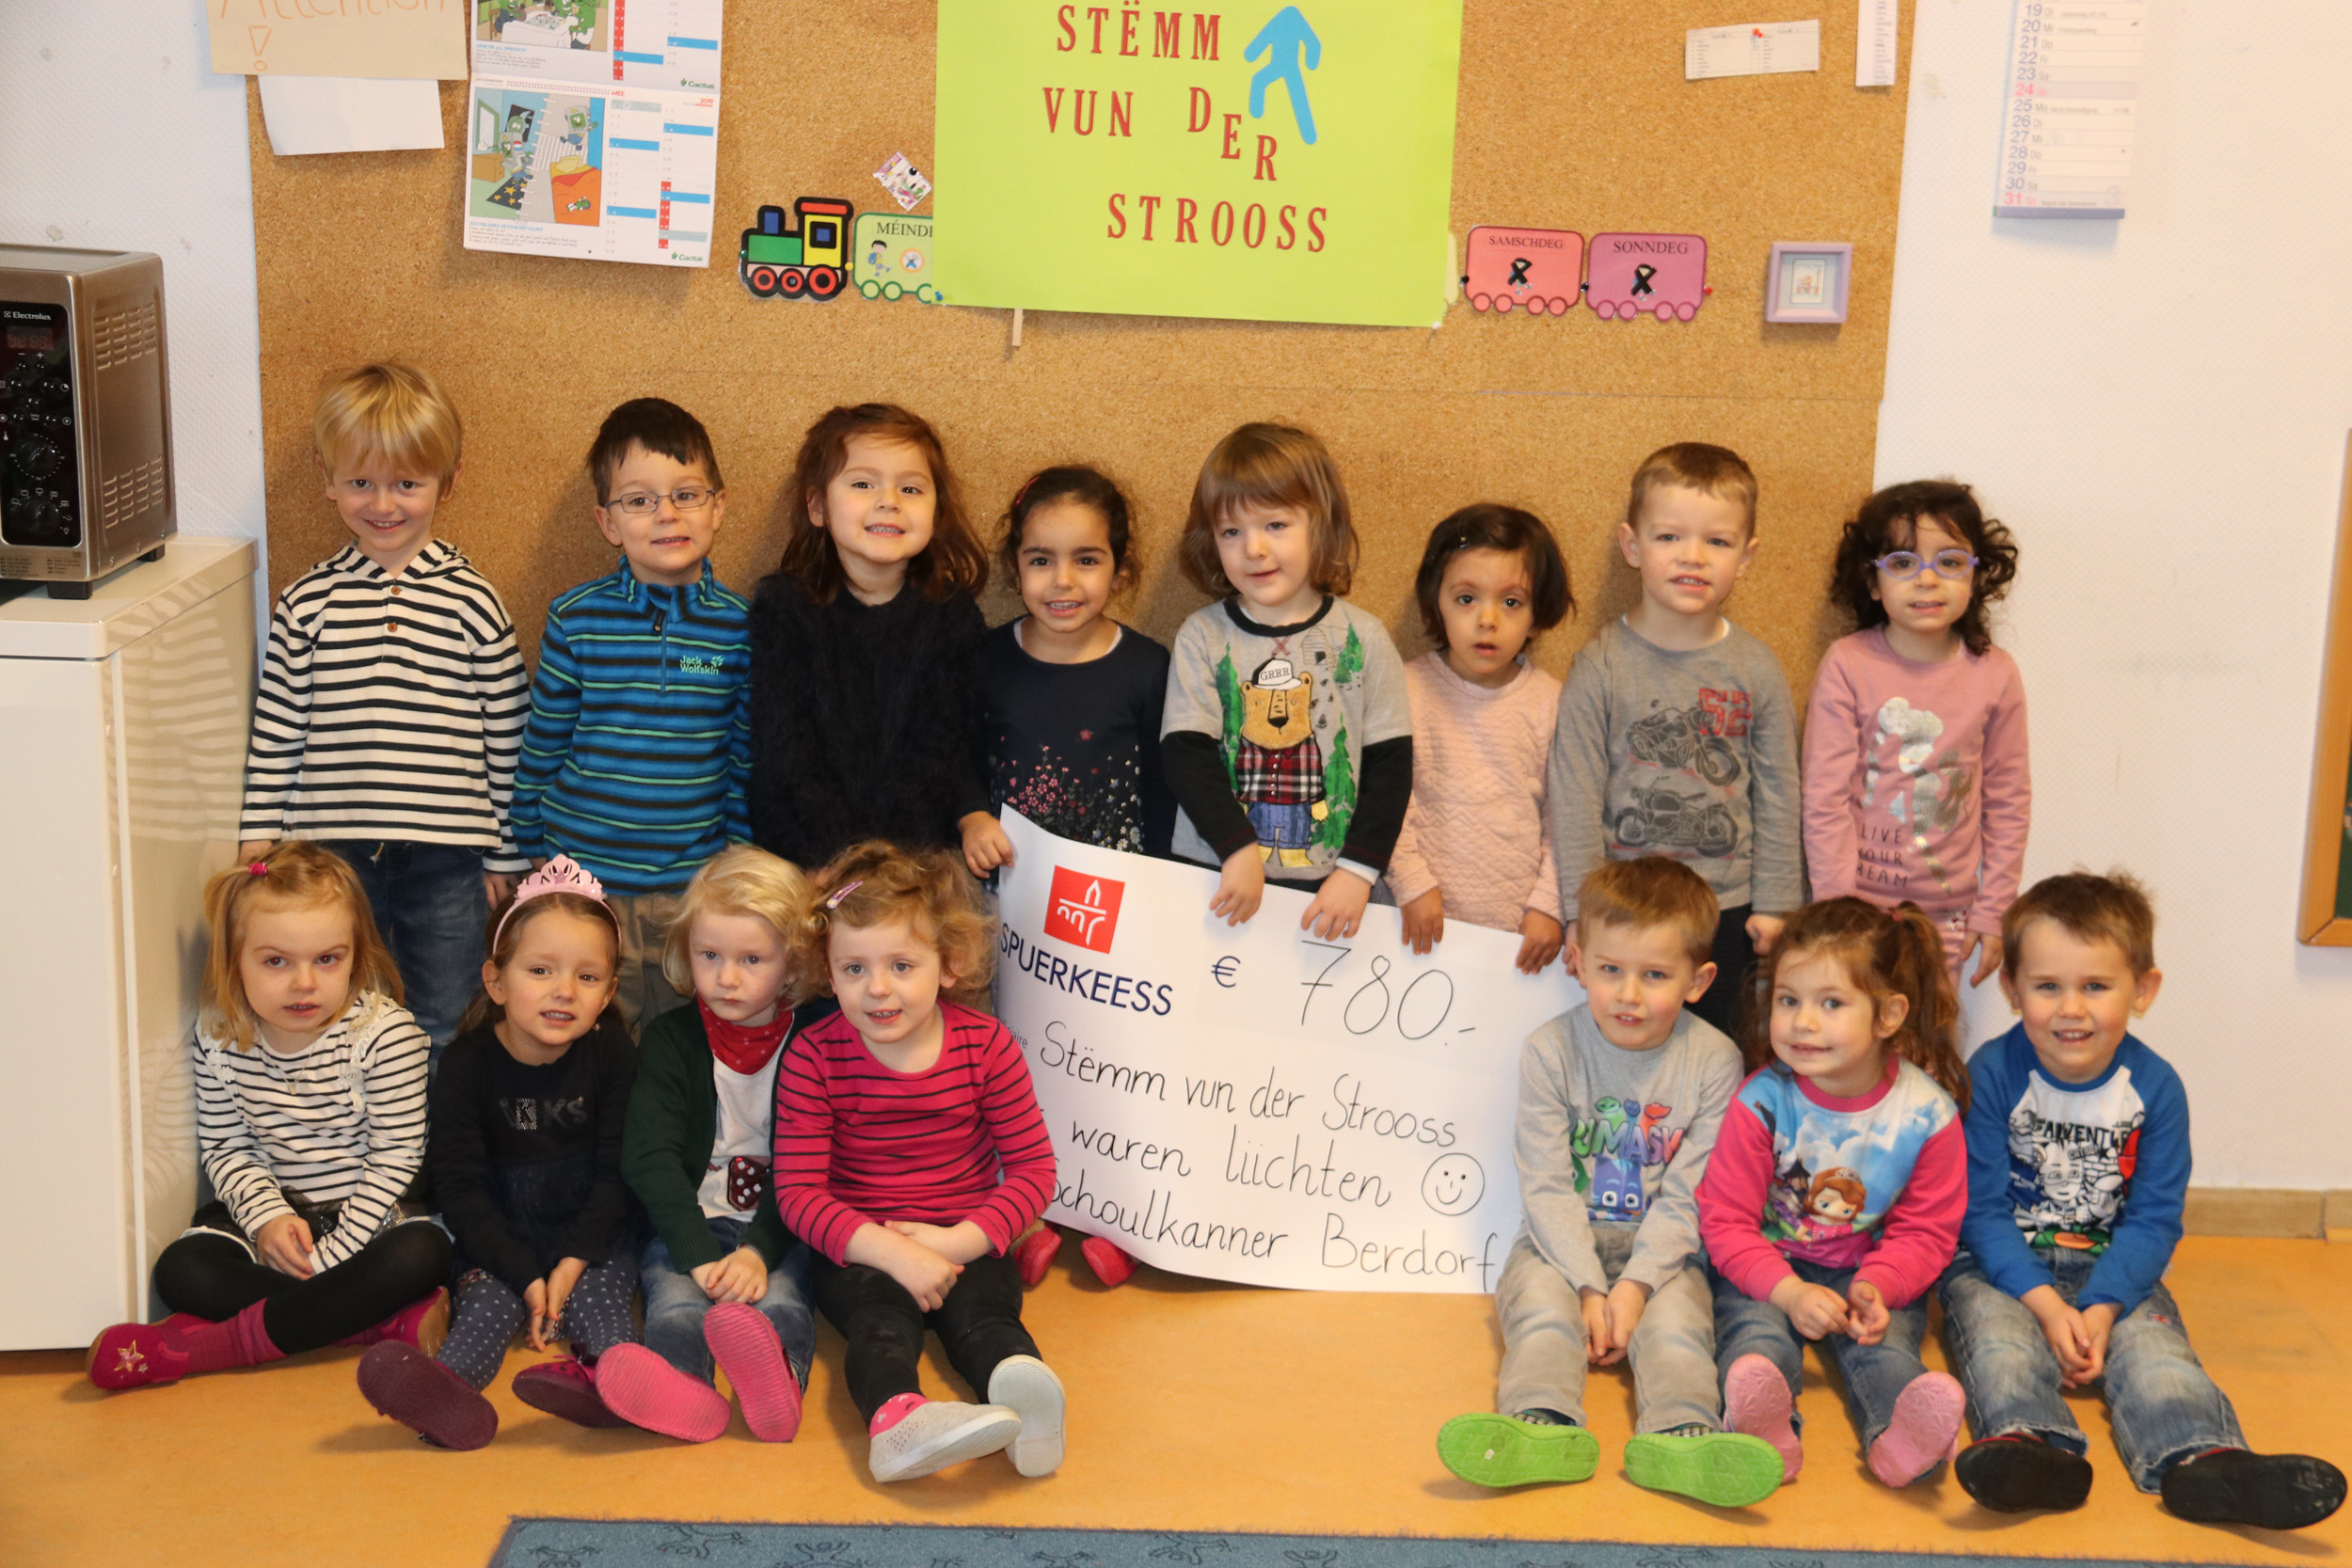 Big donation of the children from the municipality Berdorf